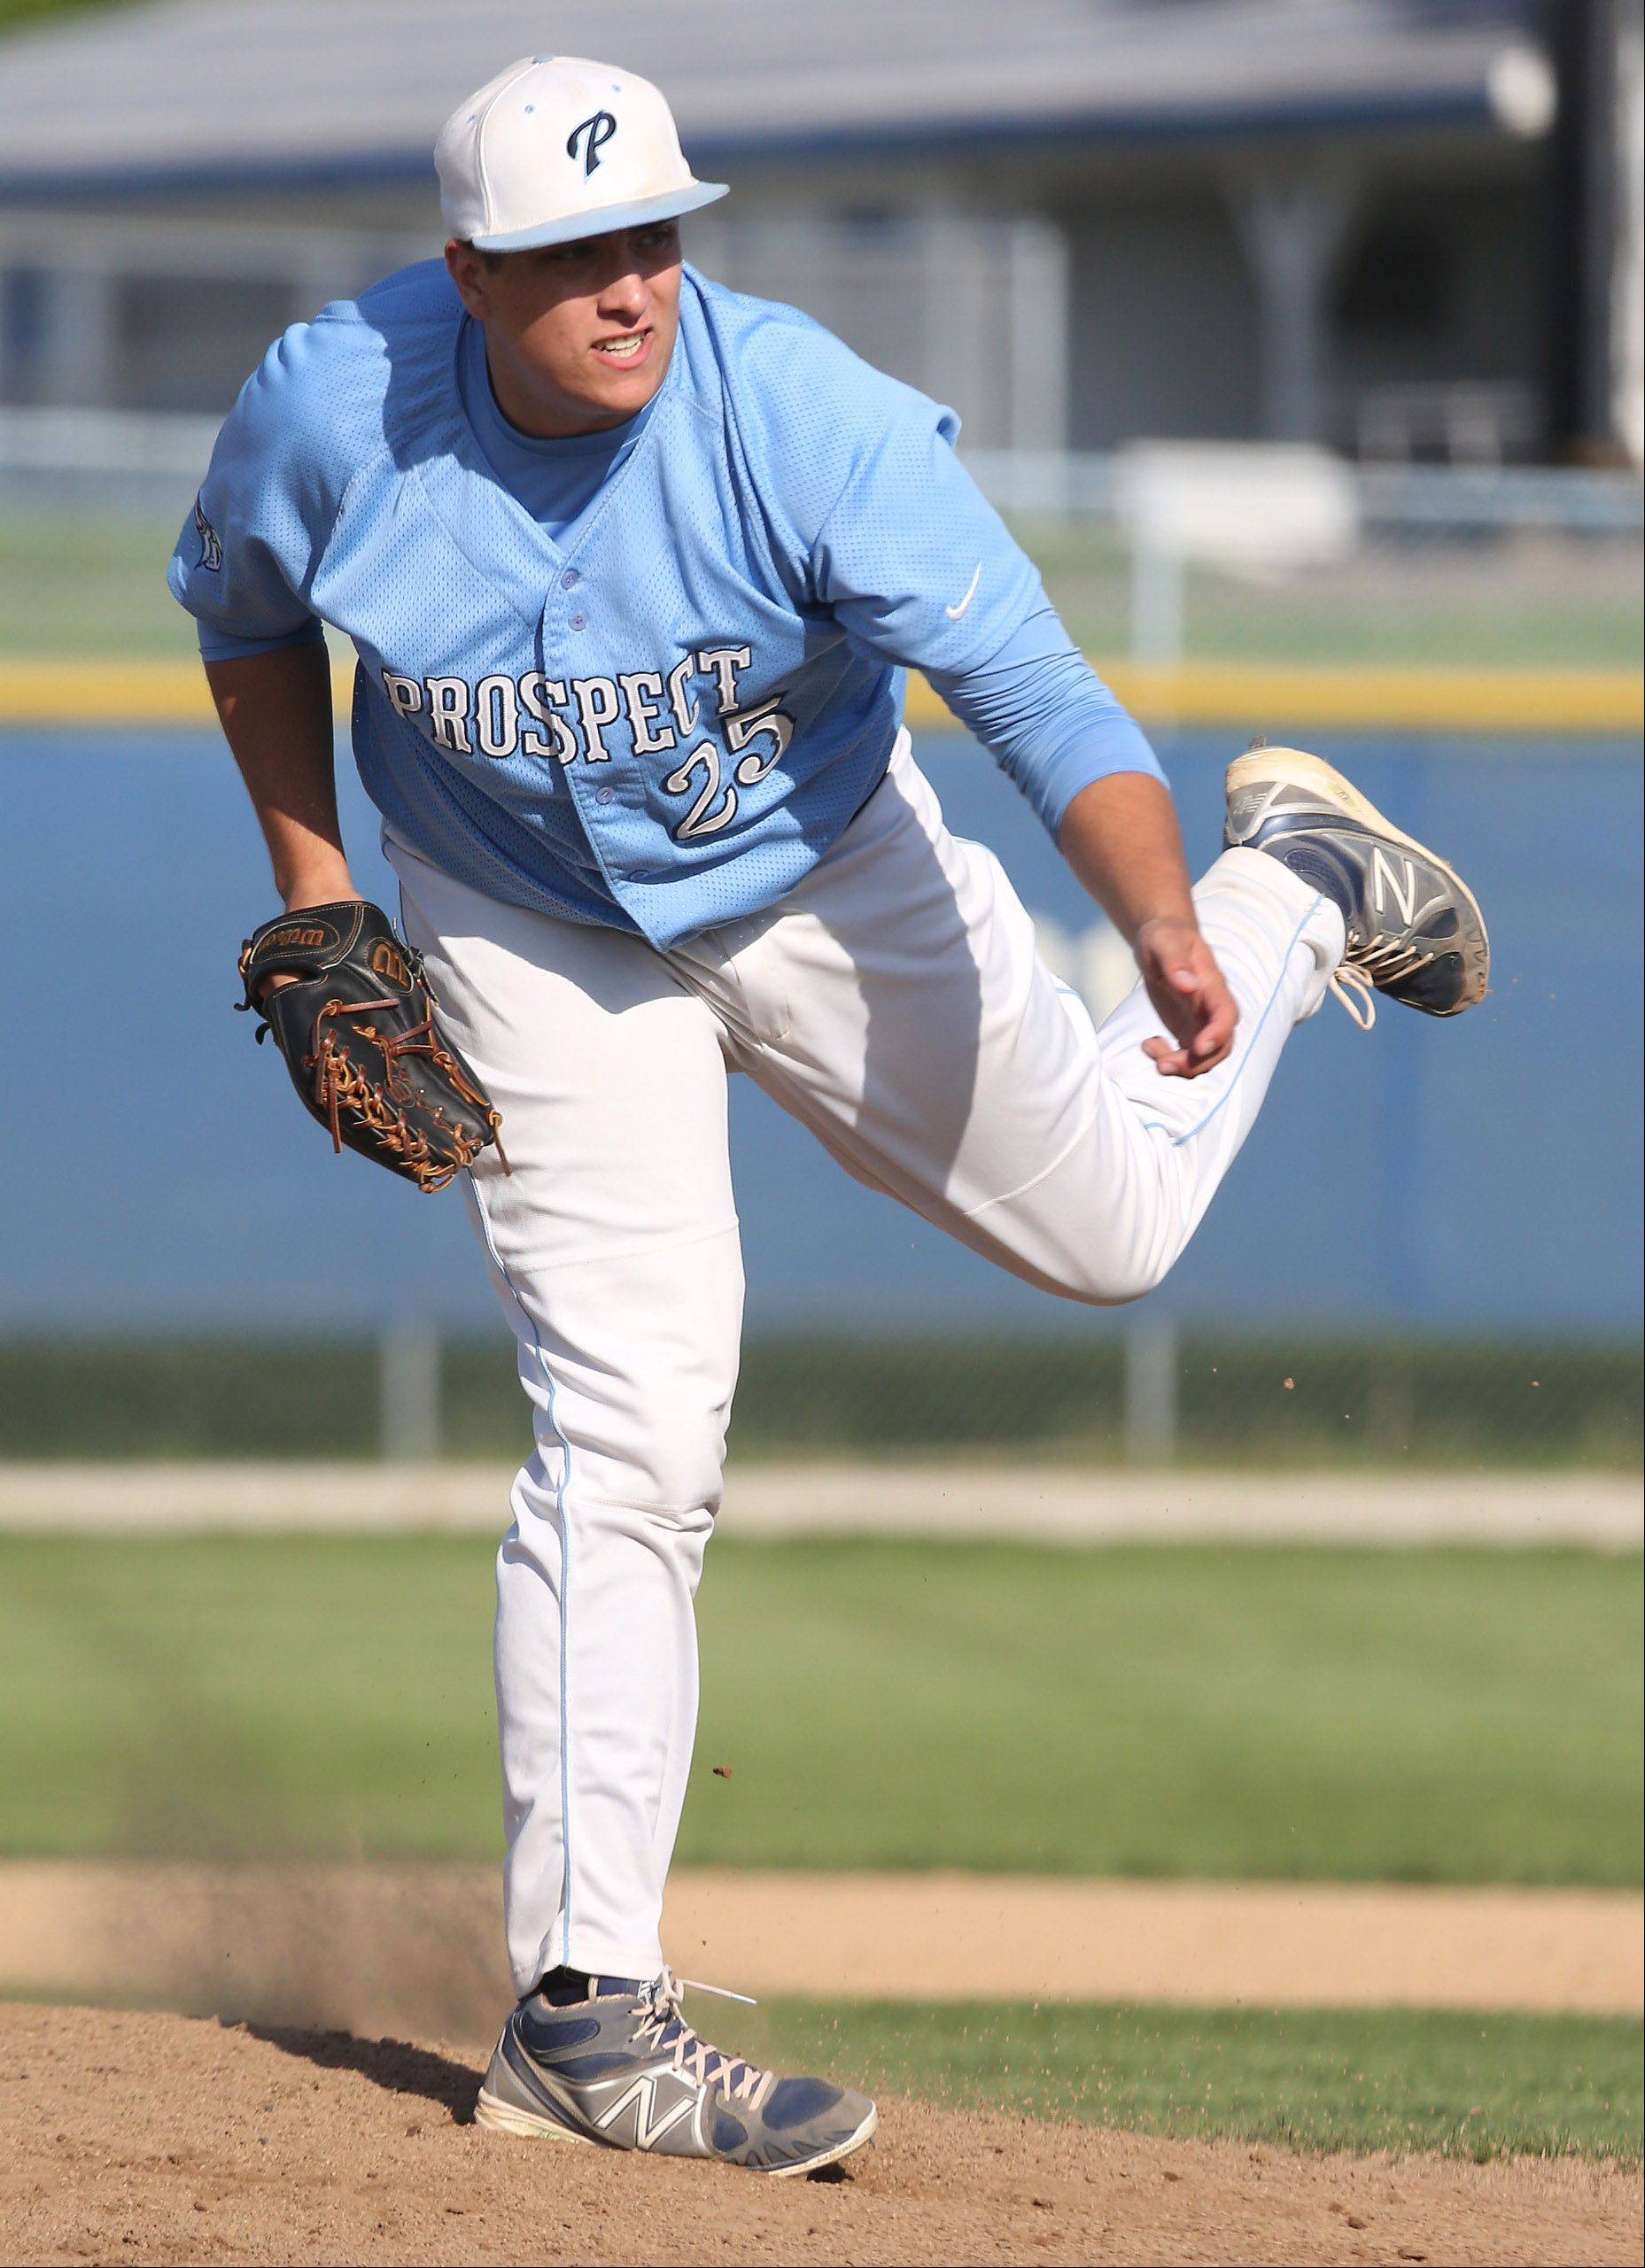 Prospect's Zach Smith delivers against host Lake Zurich during Class 4A regional action Monday at Lake Zurich.